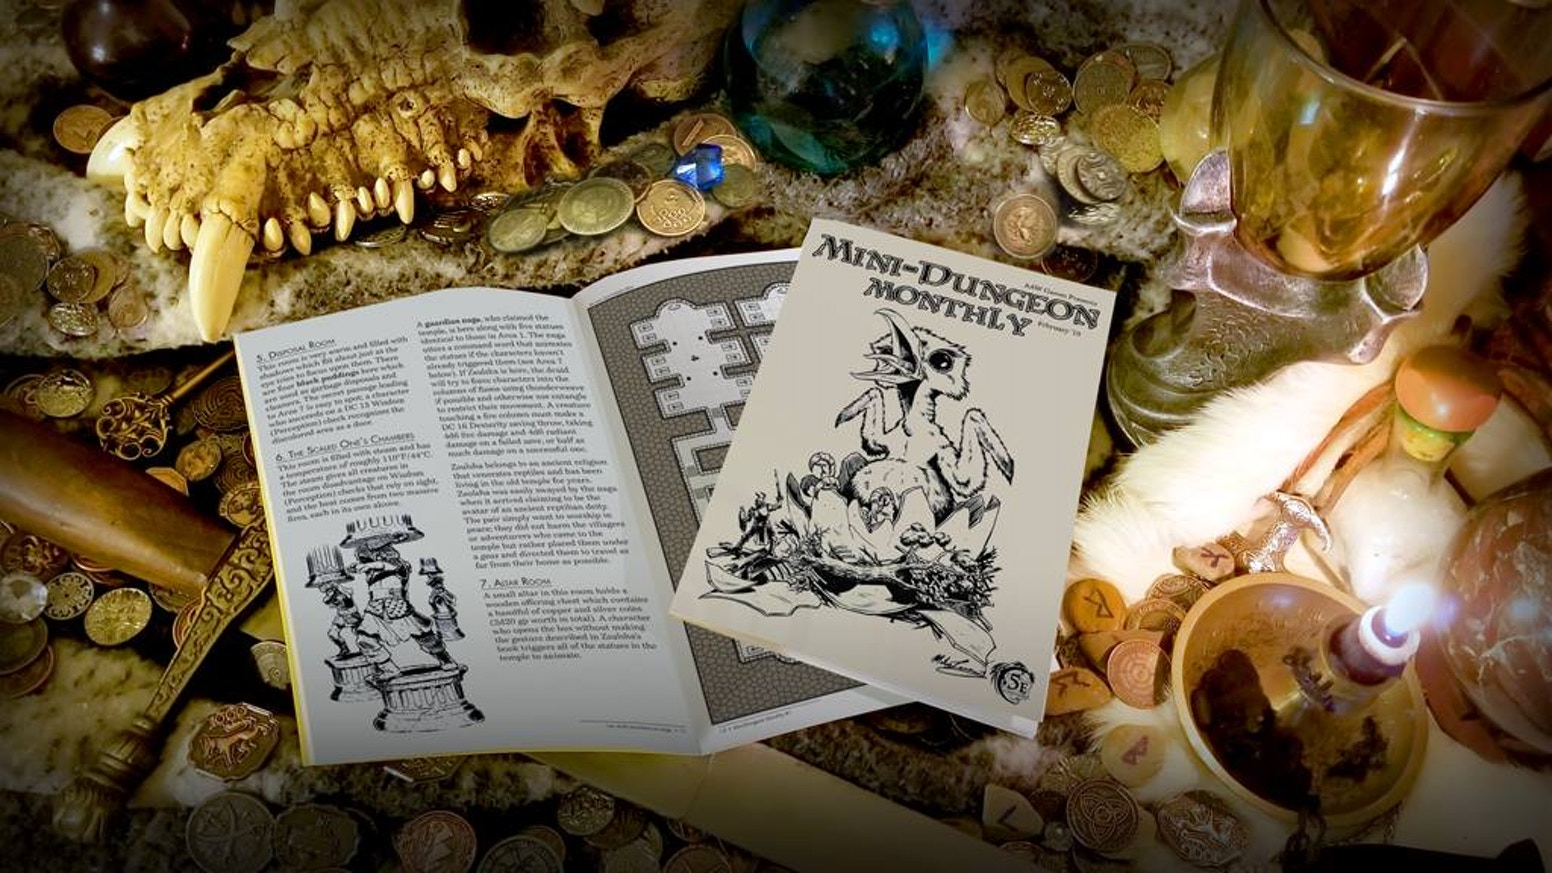 The new monthly RPG zine from AAW Games. Each issue features five brand-new Mini-Dungeon adventures for D&D 5th Edition #zinequest